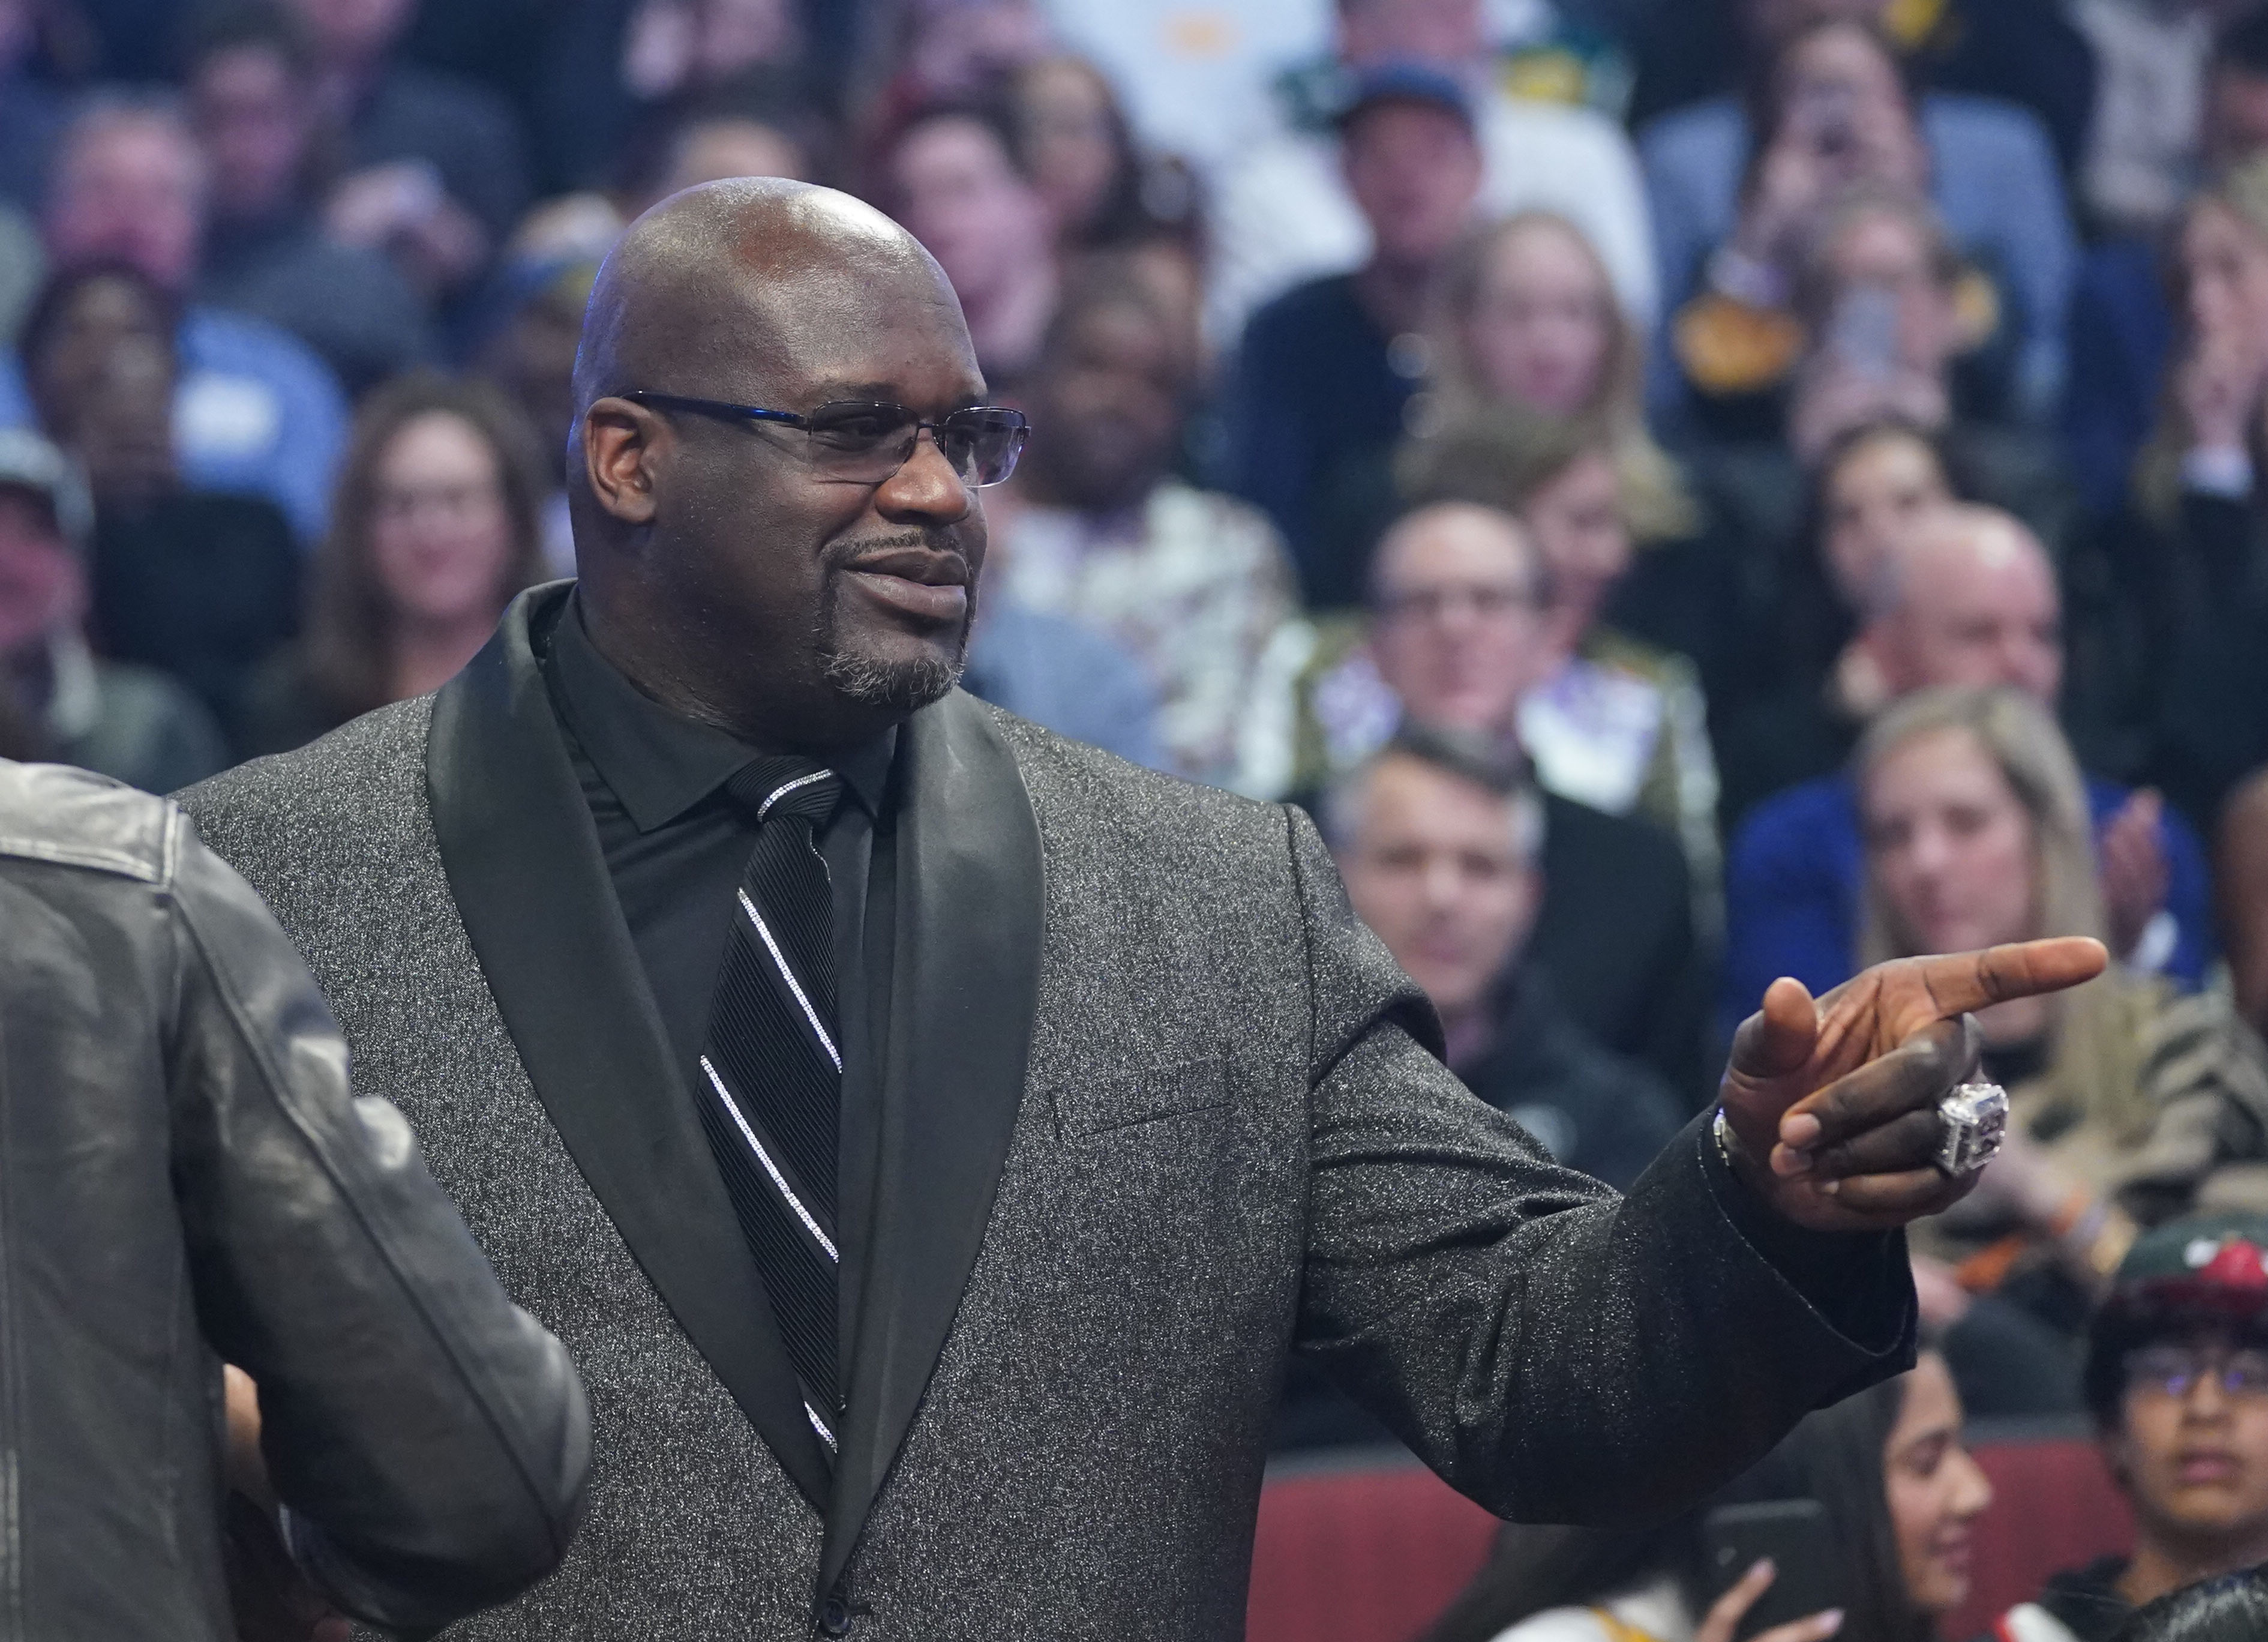 Shaq has hot take about 'easily' beating Michael Jordan's '90s Bulls teams